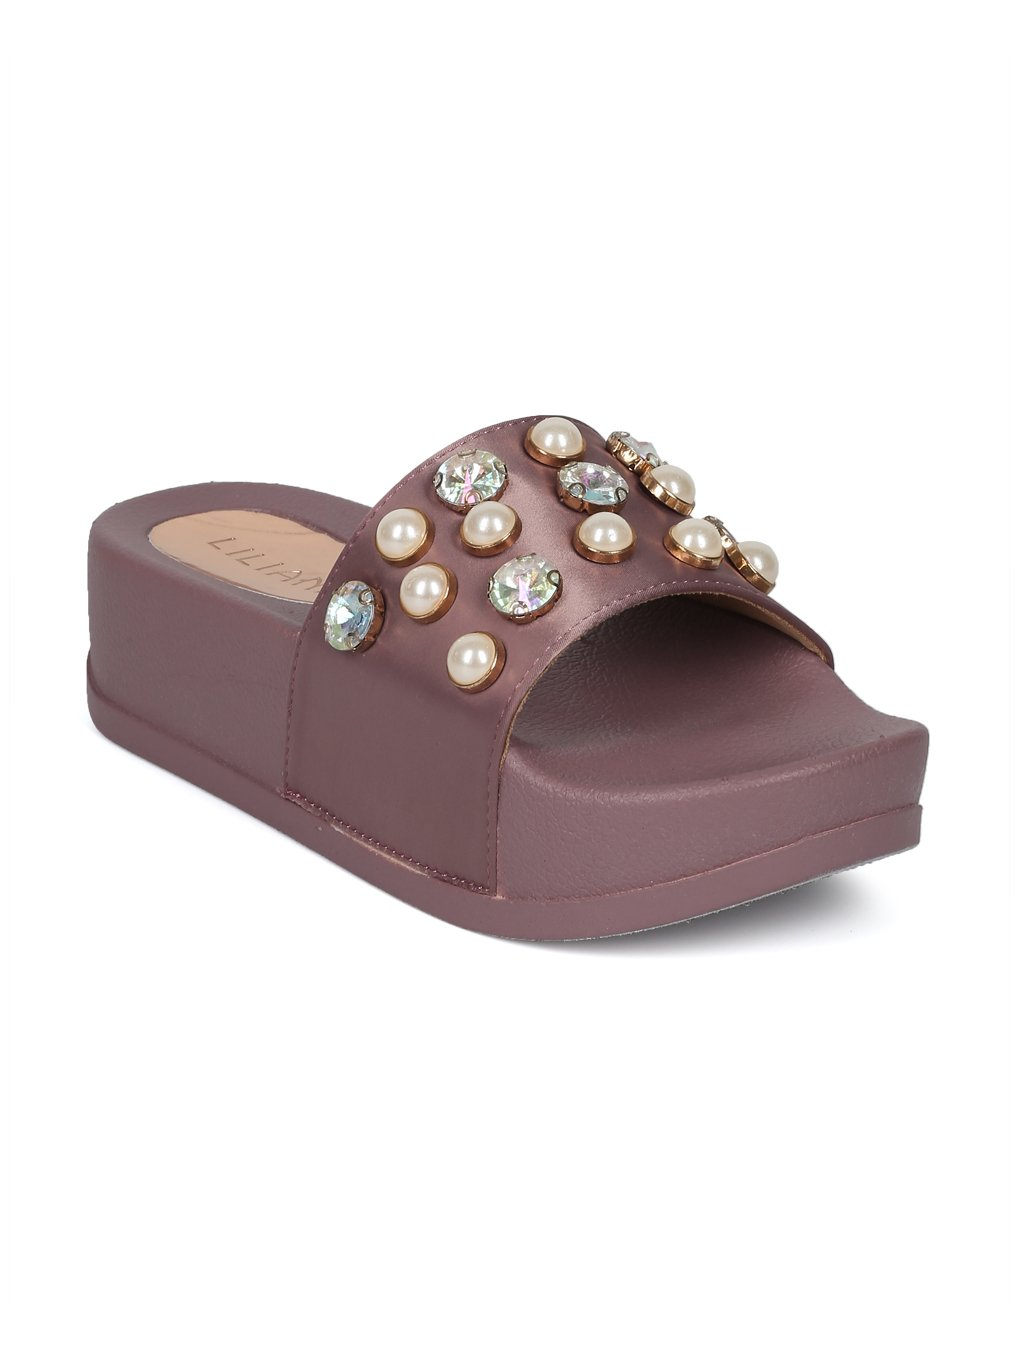 Alrisco Women Satin Faux Pearl and Gems Platform Footbed Slide HG26 B07998XGFR 6.5 M US|Mauve Satin